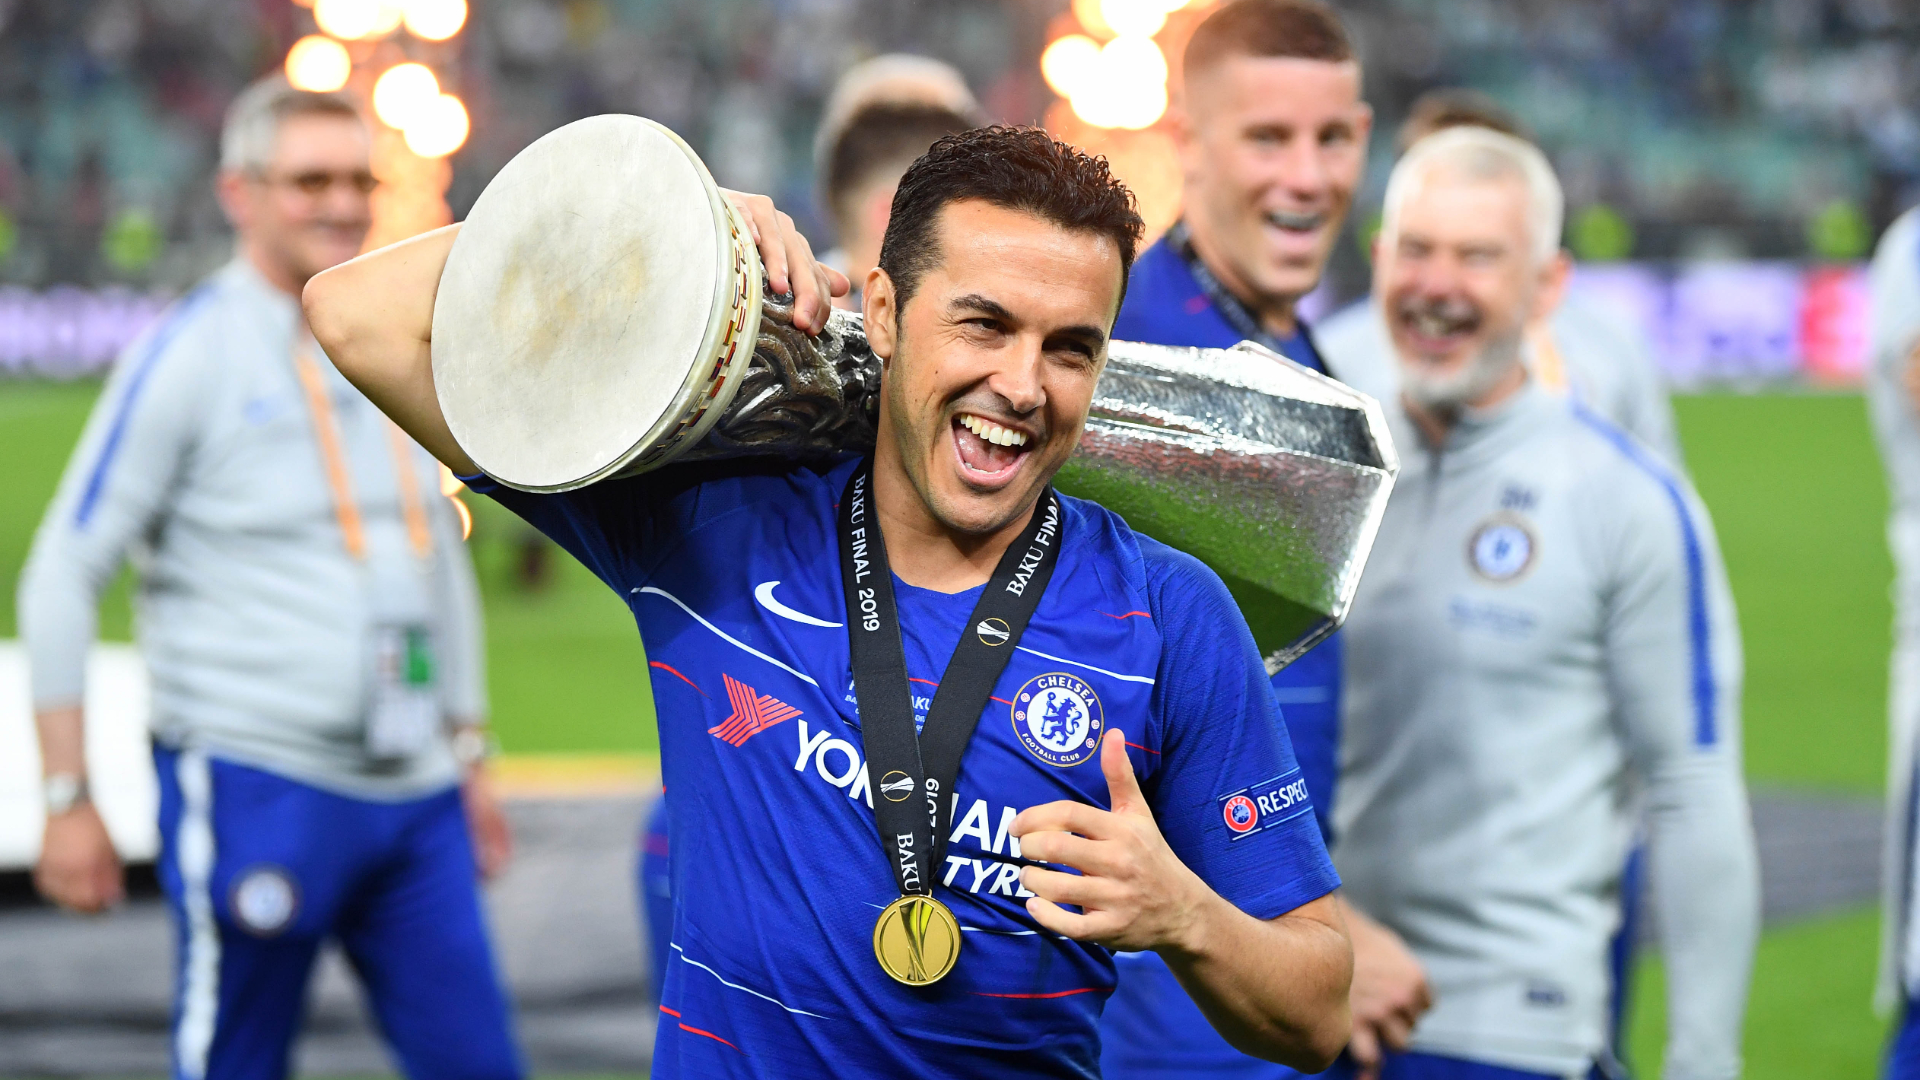 Chelsea 4-1 Arsenal: Pedro sets new mark with unparalleled trophy haul after Europa League triumph | Goal.com